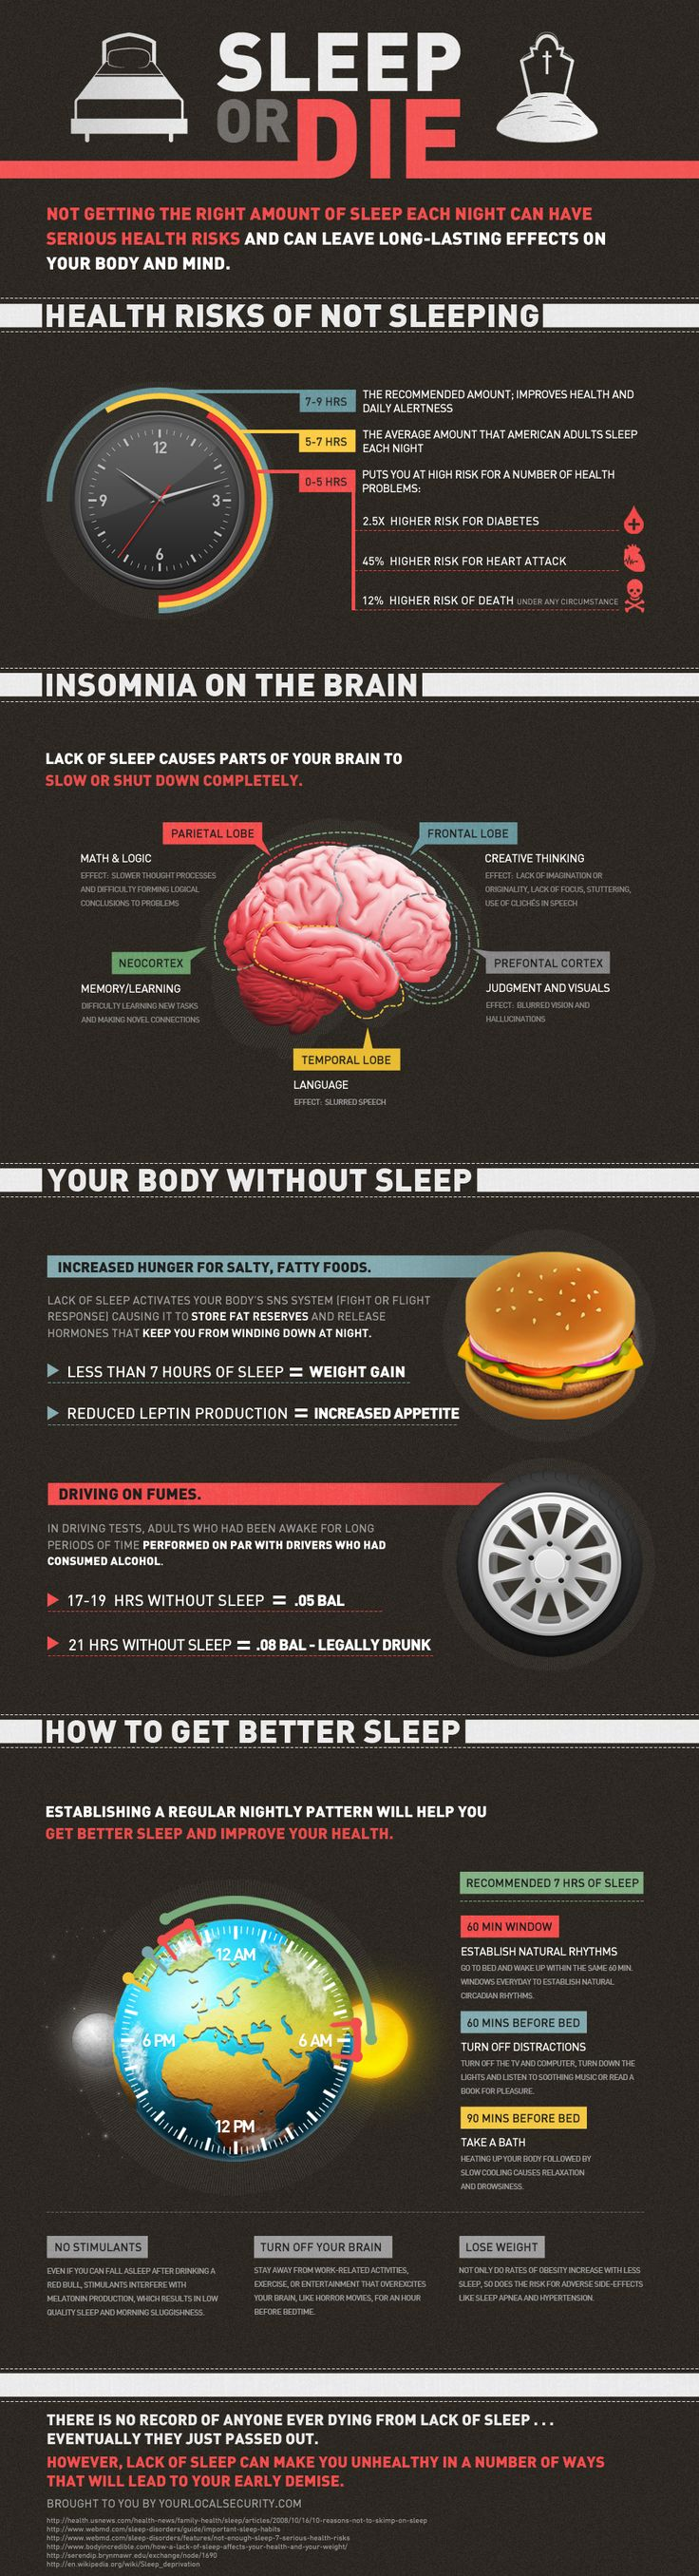 Ultimate #sleep guide called Sleep Or Die. It goes through the effects of not sleeping, as well as what you can do in order to fall asleep more relaxed. The tips in this #infographic might seem simple, but they are thoroughly tested over many years and are guaranteed to work. I think I might actually have a go at some of these since I feel I haven't had a good night's sleep since I was like a kiddo. Maybe this will alter my doomsday coming early, if you know what I mean.